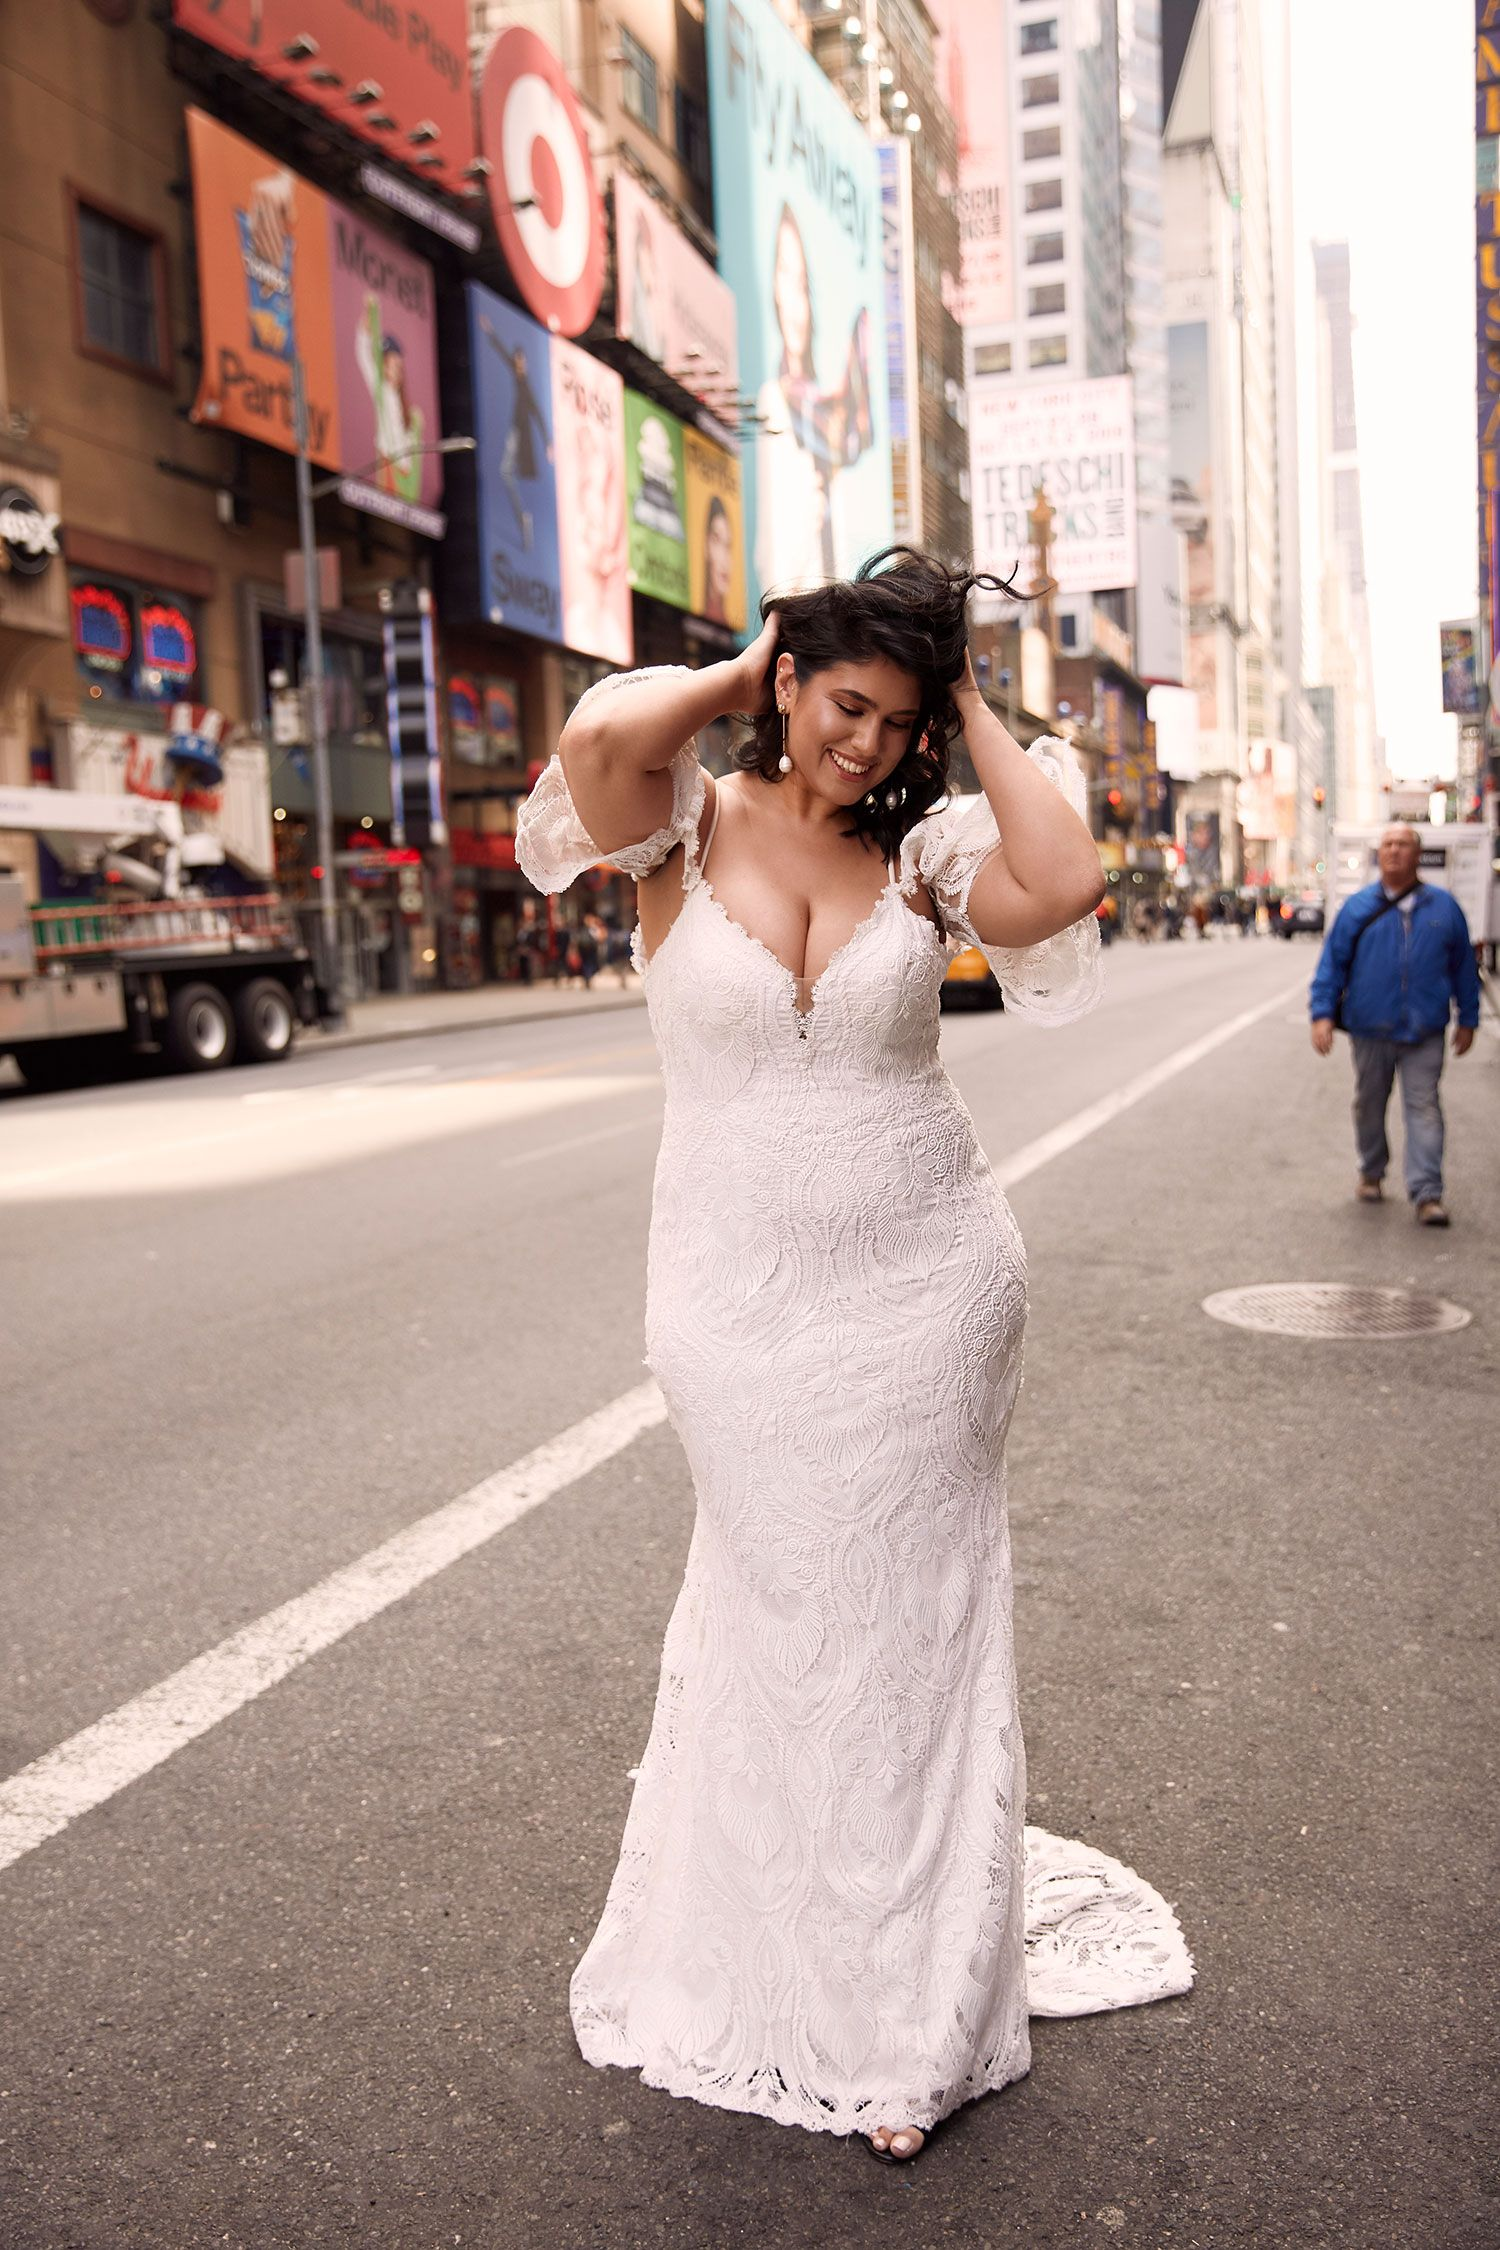 Madi Lane India Gown In 2020 India Wedding Dress Flattering Wedding Dress Plus Size Wedding Gowns,Outdoor Wedding Mother Of The Bride Dresses For Summer